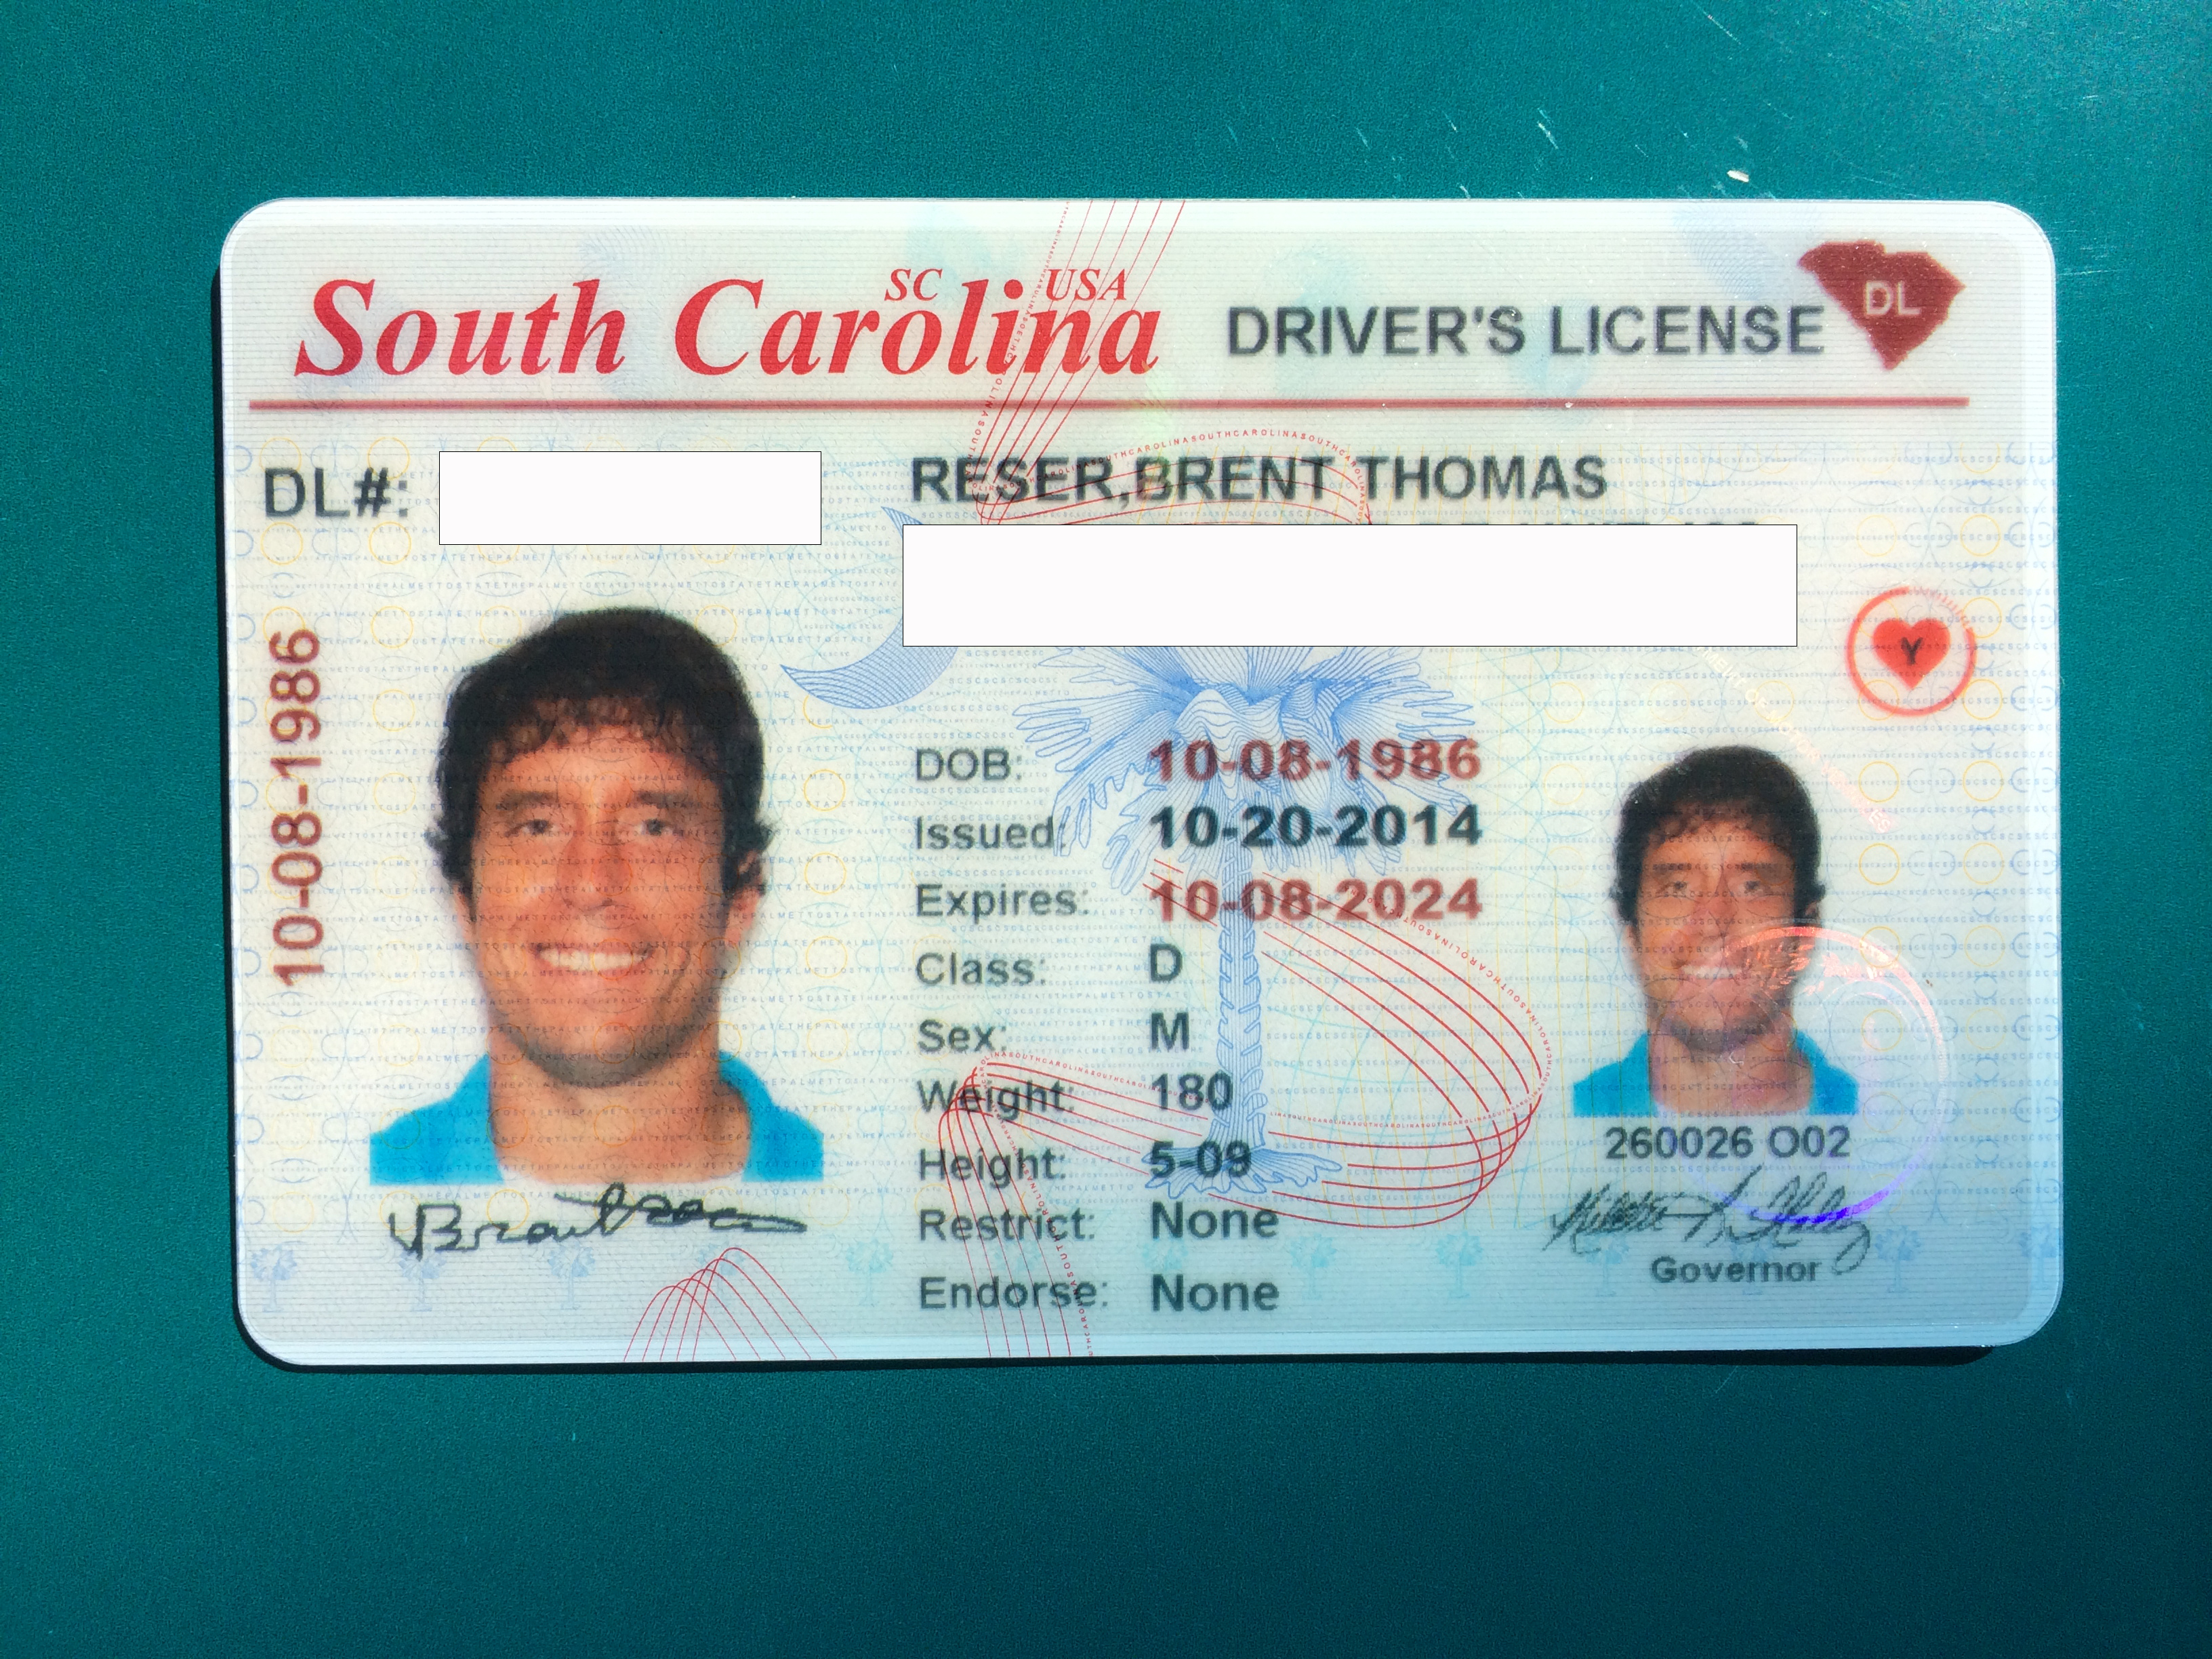 Check out my new South Carolina driver's license!